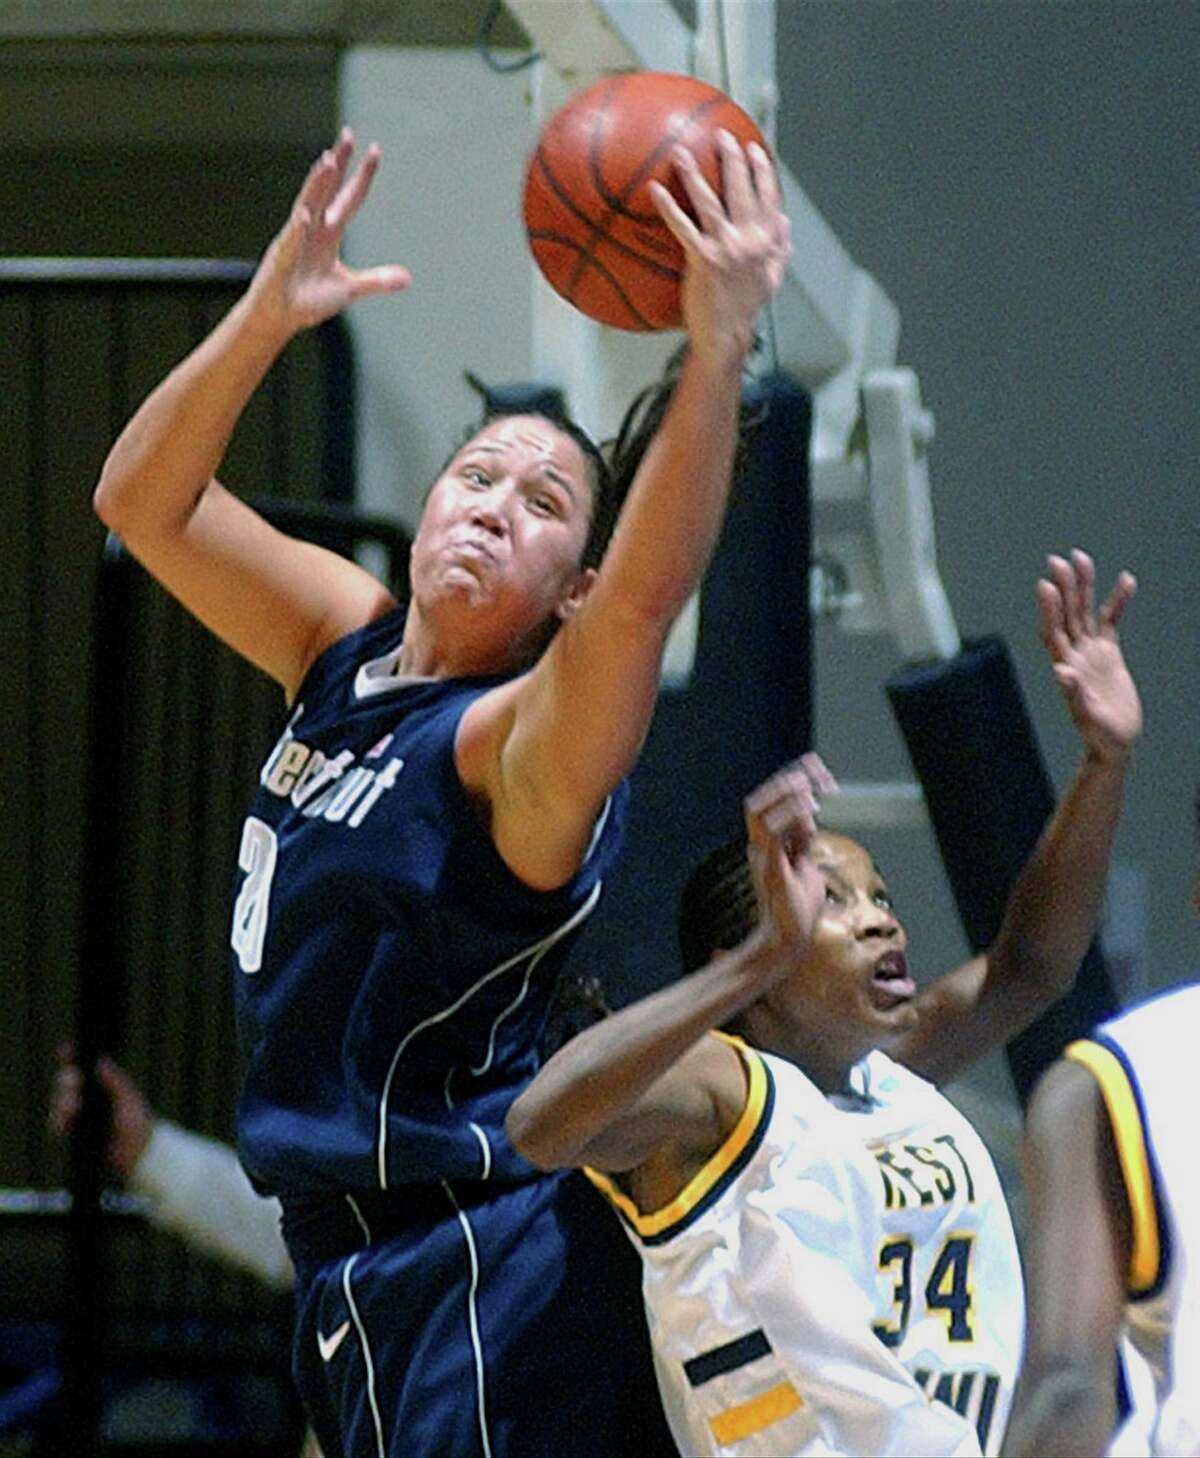 UConn's Morgan Valley, left, rebounds in the first half over West Virginia's Janell Dunlap in Morgantown, W.Va., Wednesday, Jan 7, 2004.